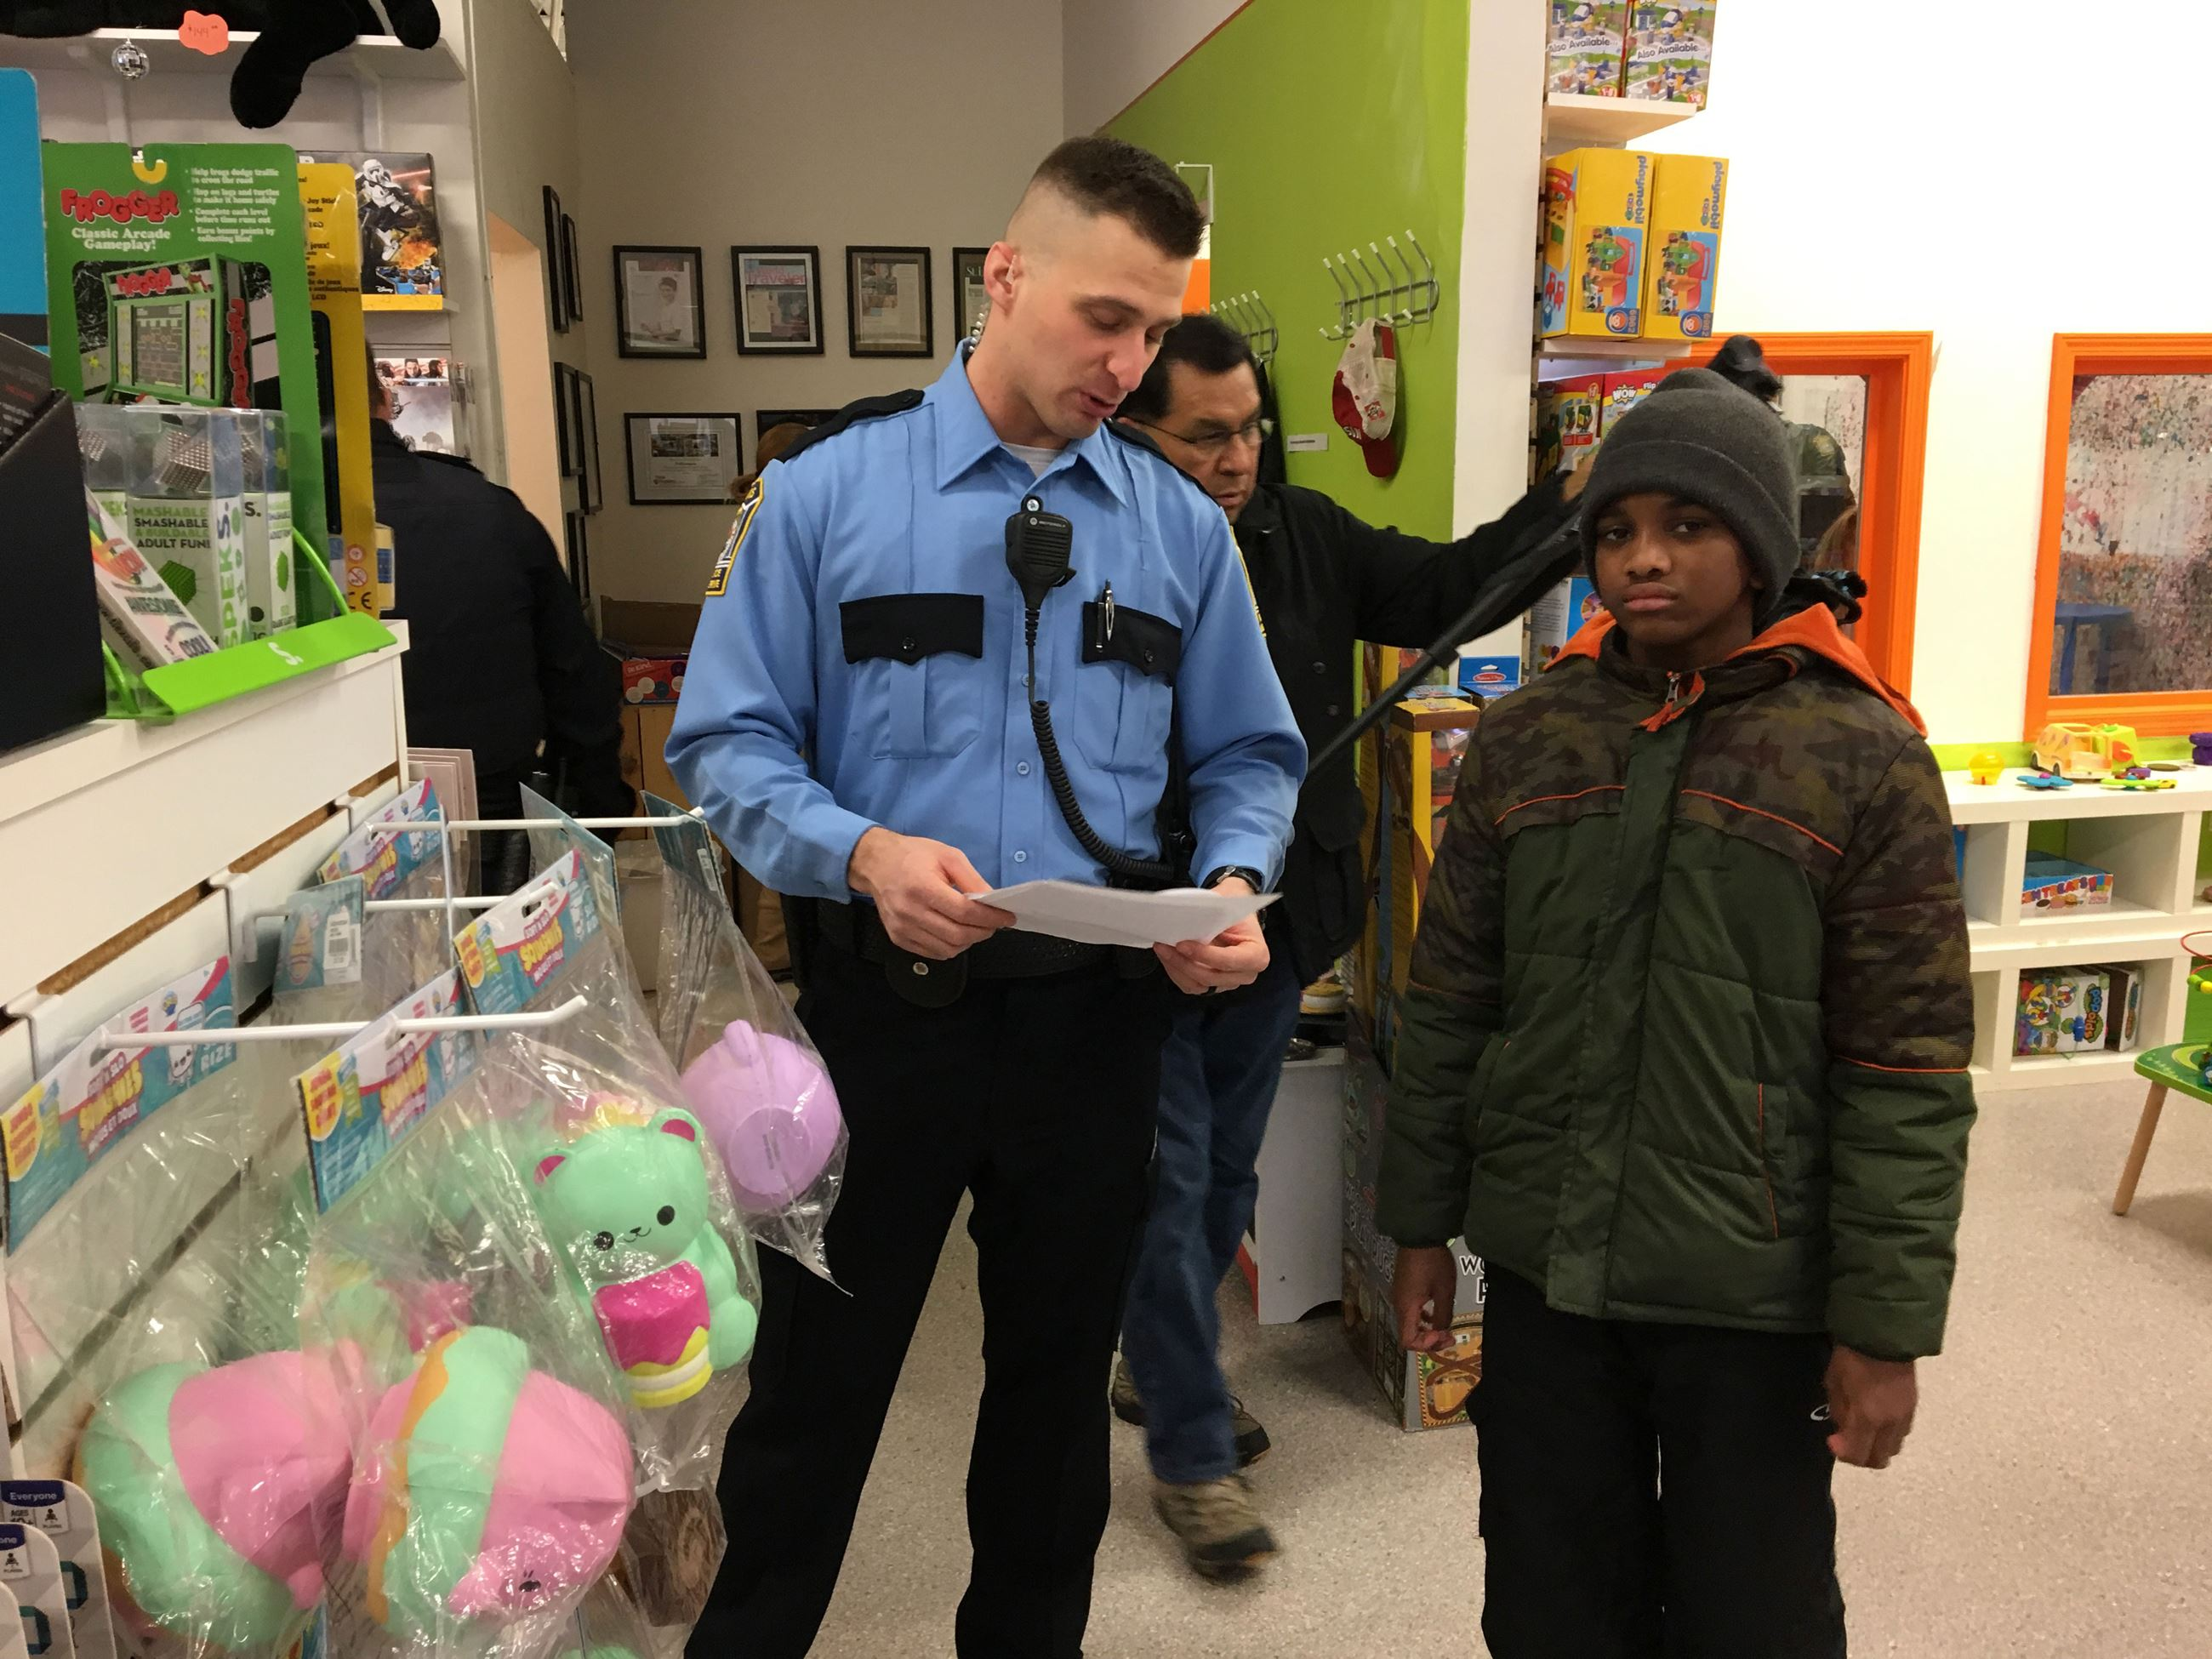 Police Reserves Helping in the Community - at Shopping Area